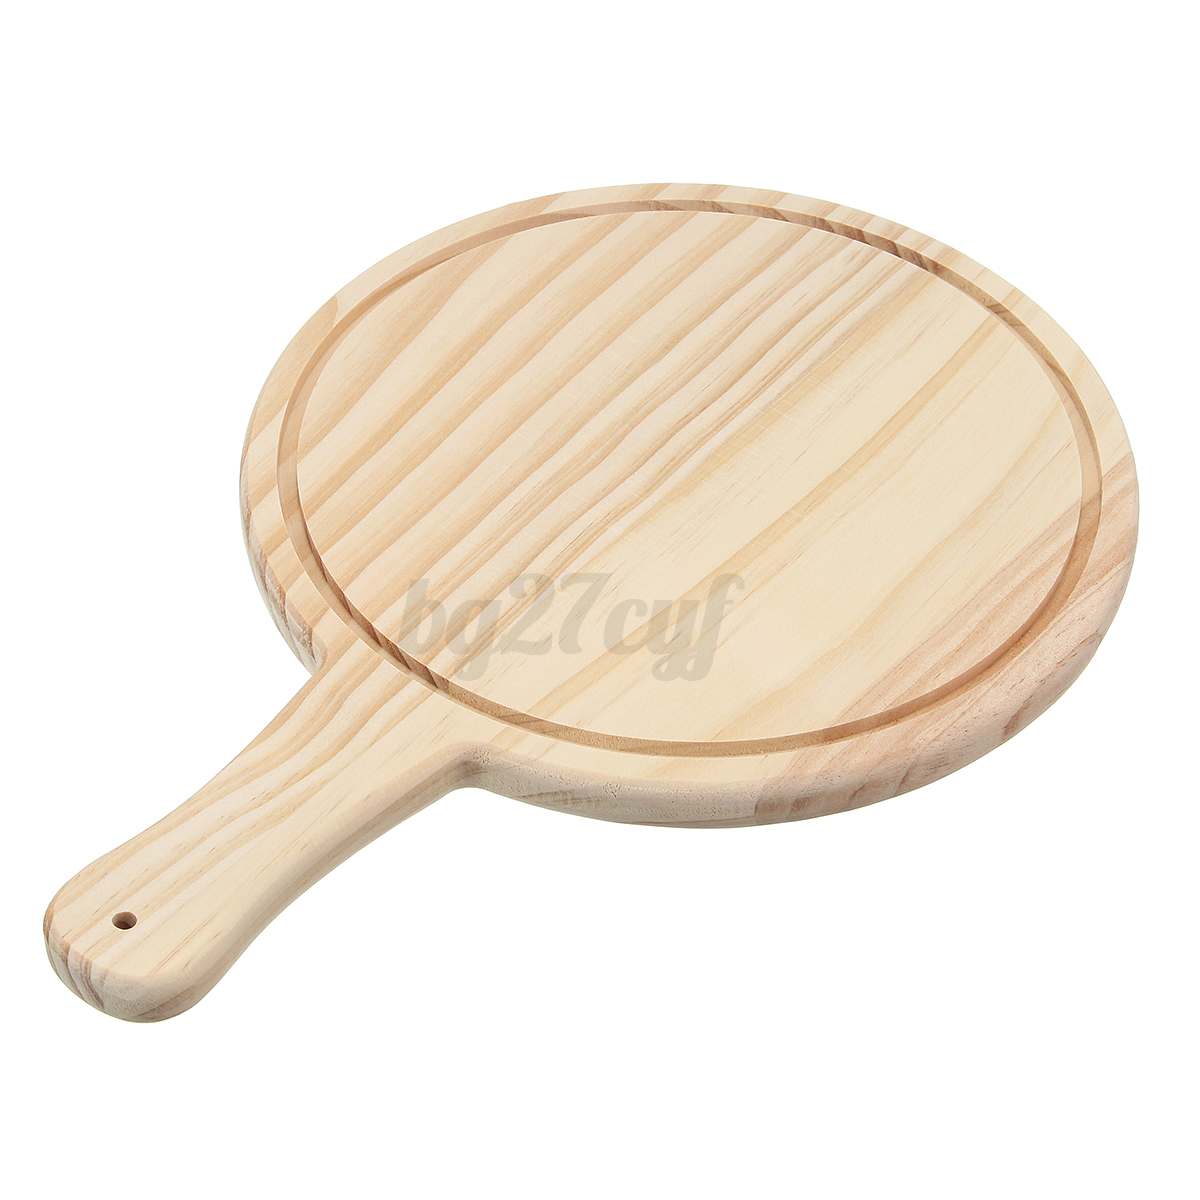 Wooden Paddle Peel Oven Wood Board Plate Pizza Bake